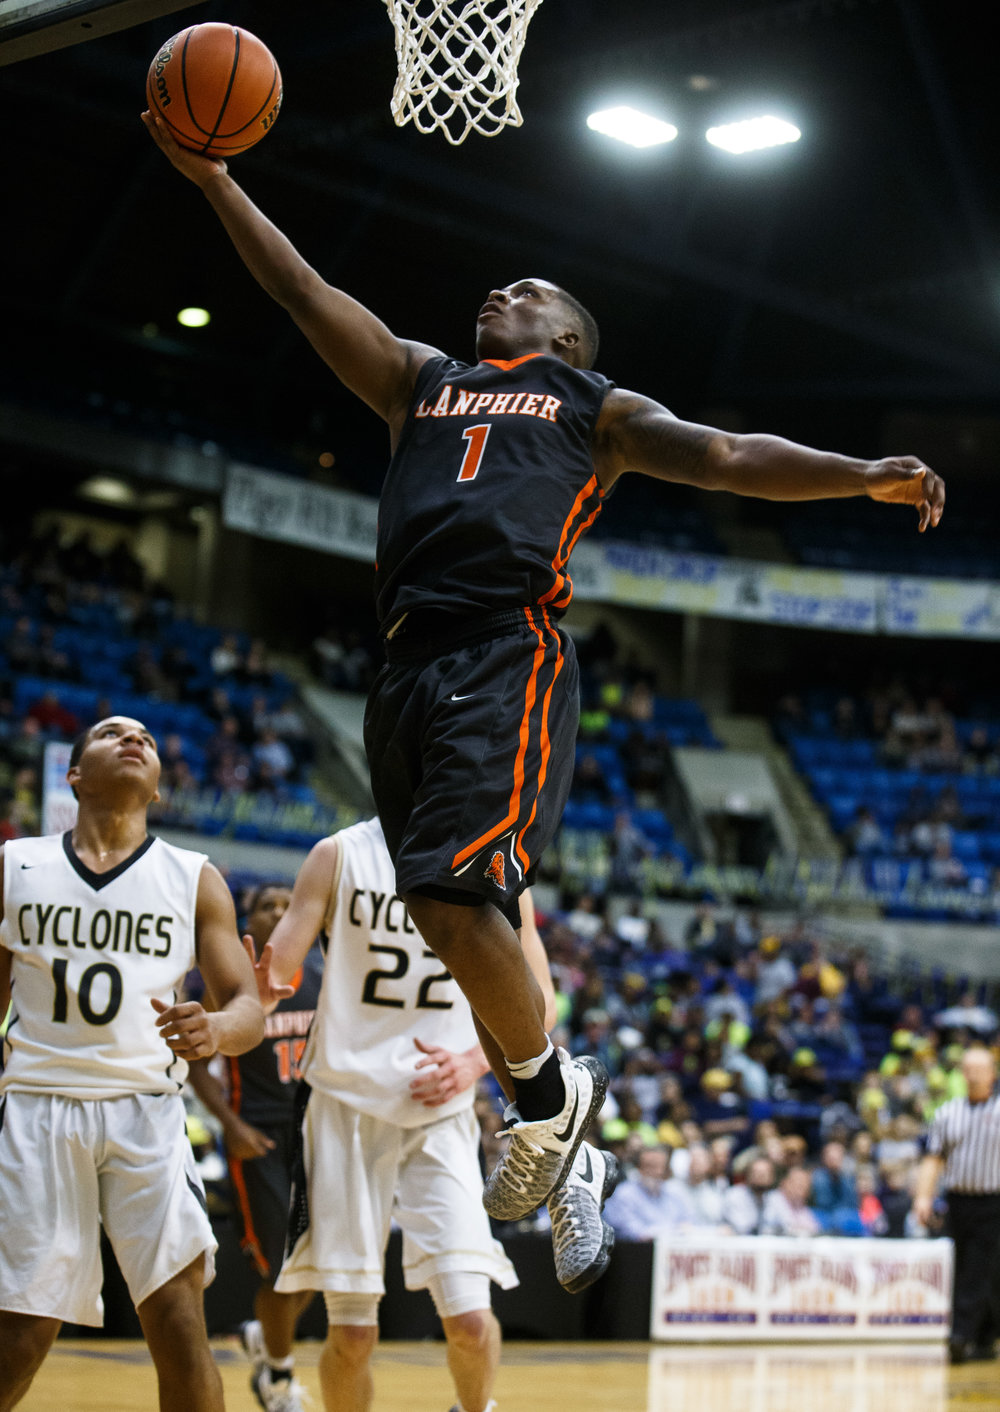 Lanphier's Yaakema Rose (1) goes up for a basket against Sacred Heart-Griffin in the second quarter of the Boys City Basketball Tournament at the Prairie Capital Convention Center, Friday, Jan. 20, 2017, in Springfield, Ill. Justin L. Fowler/The State Journal-Register